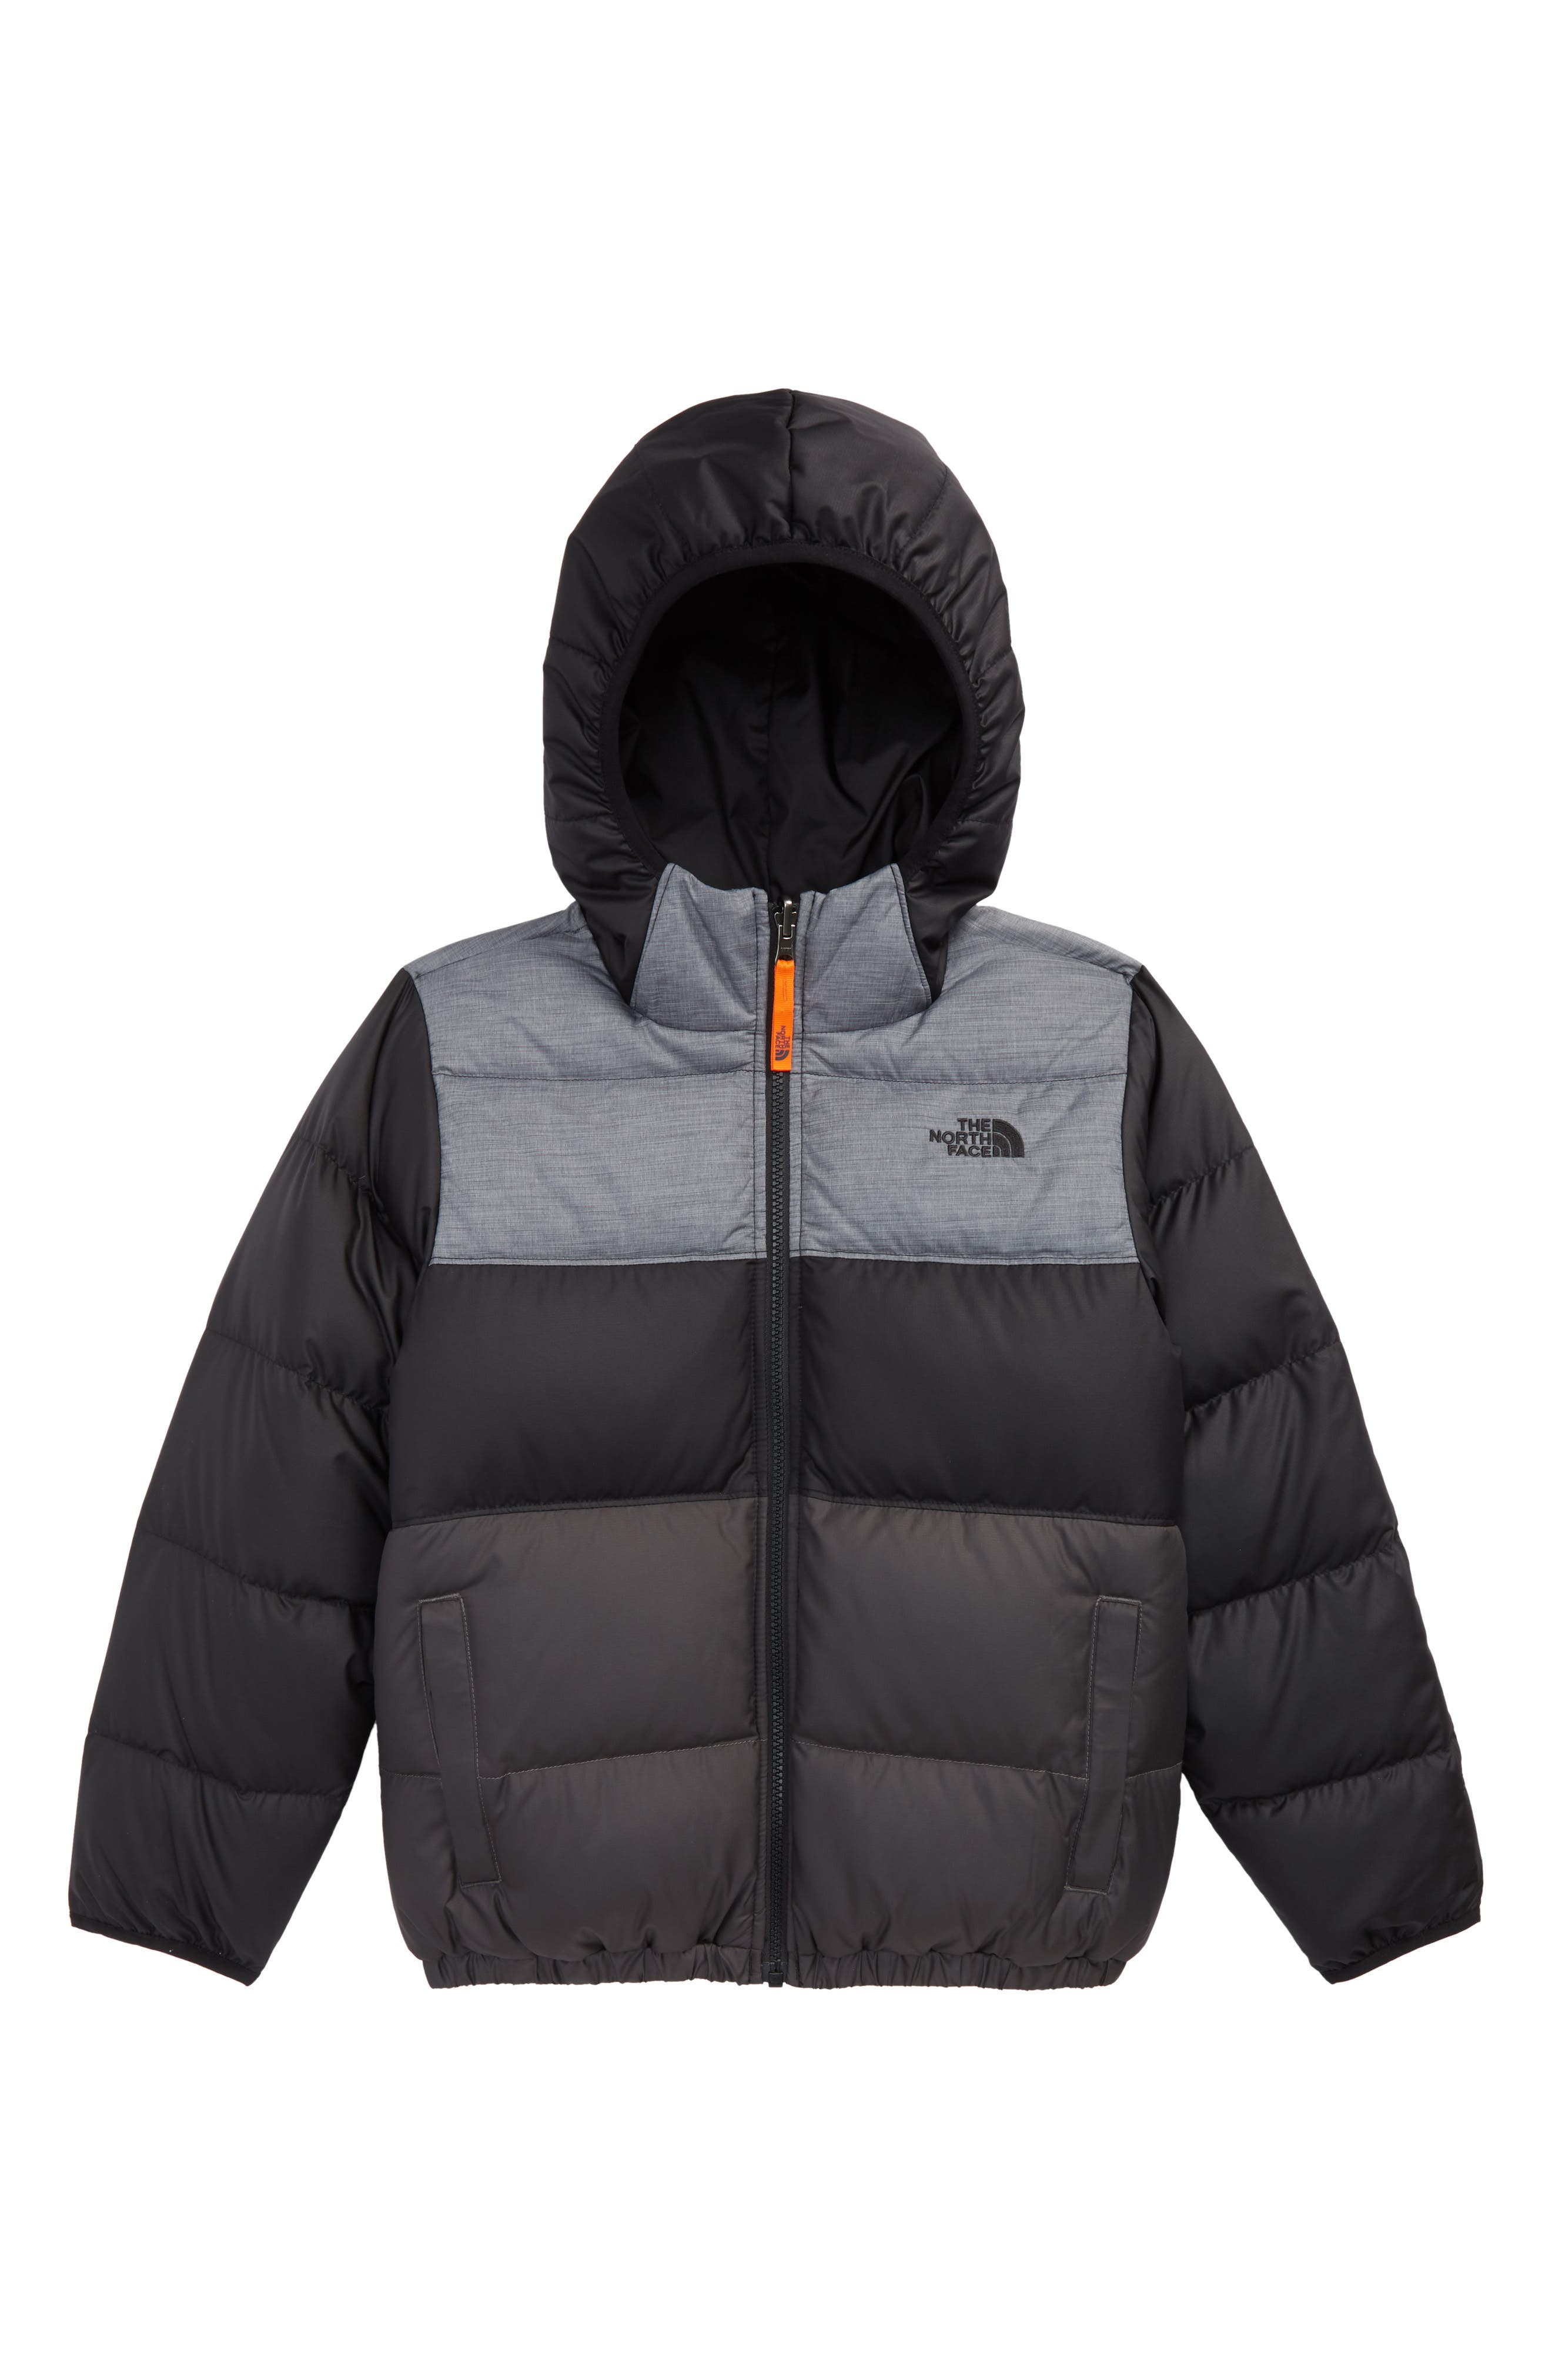 Boys The North Face Moondoggy Water Repellent Reversible Down Jacket Size L (1416)  Black